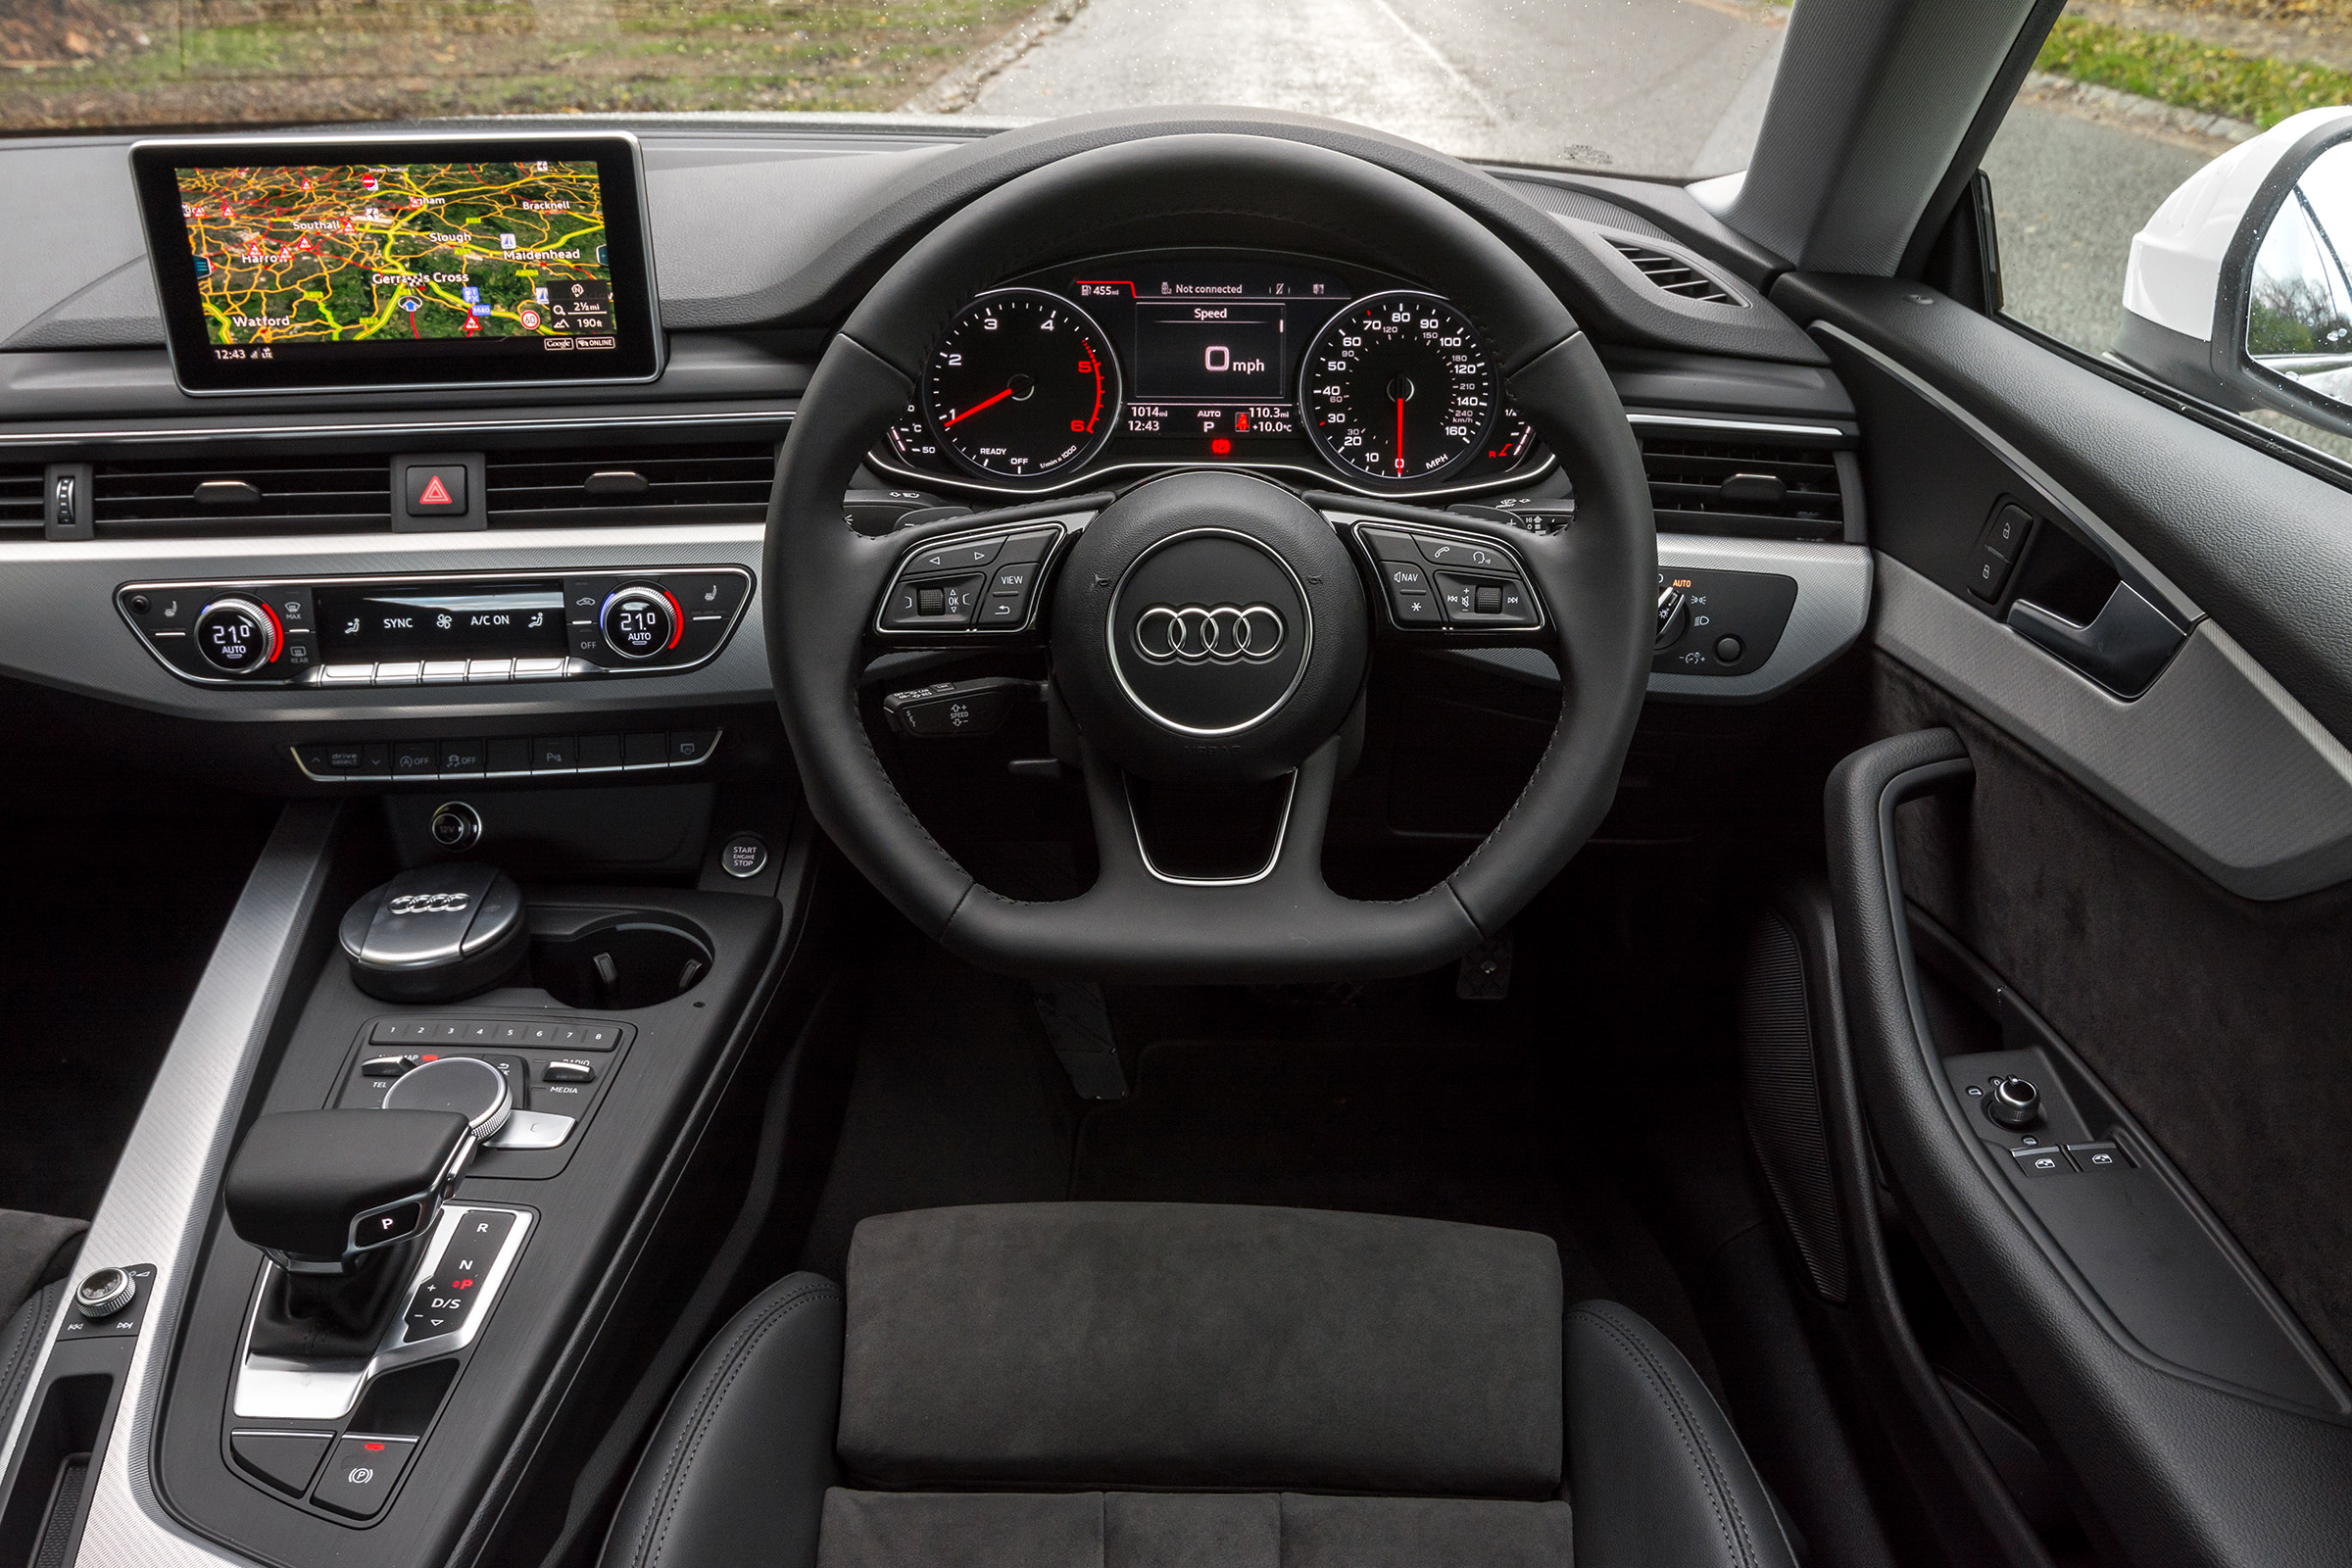 2017 Audi A5 Coupe Interior Cockpit And Dash (Photo 9 of 21)